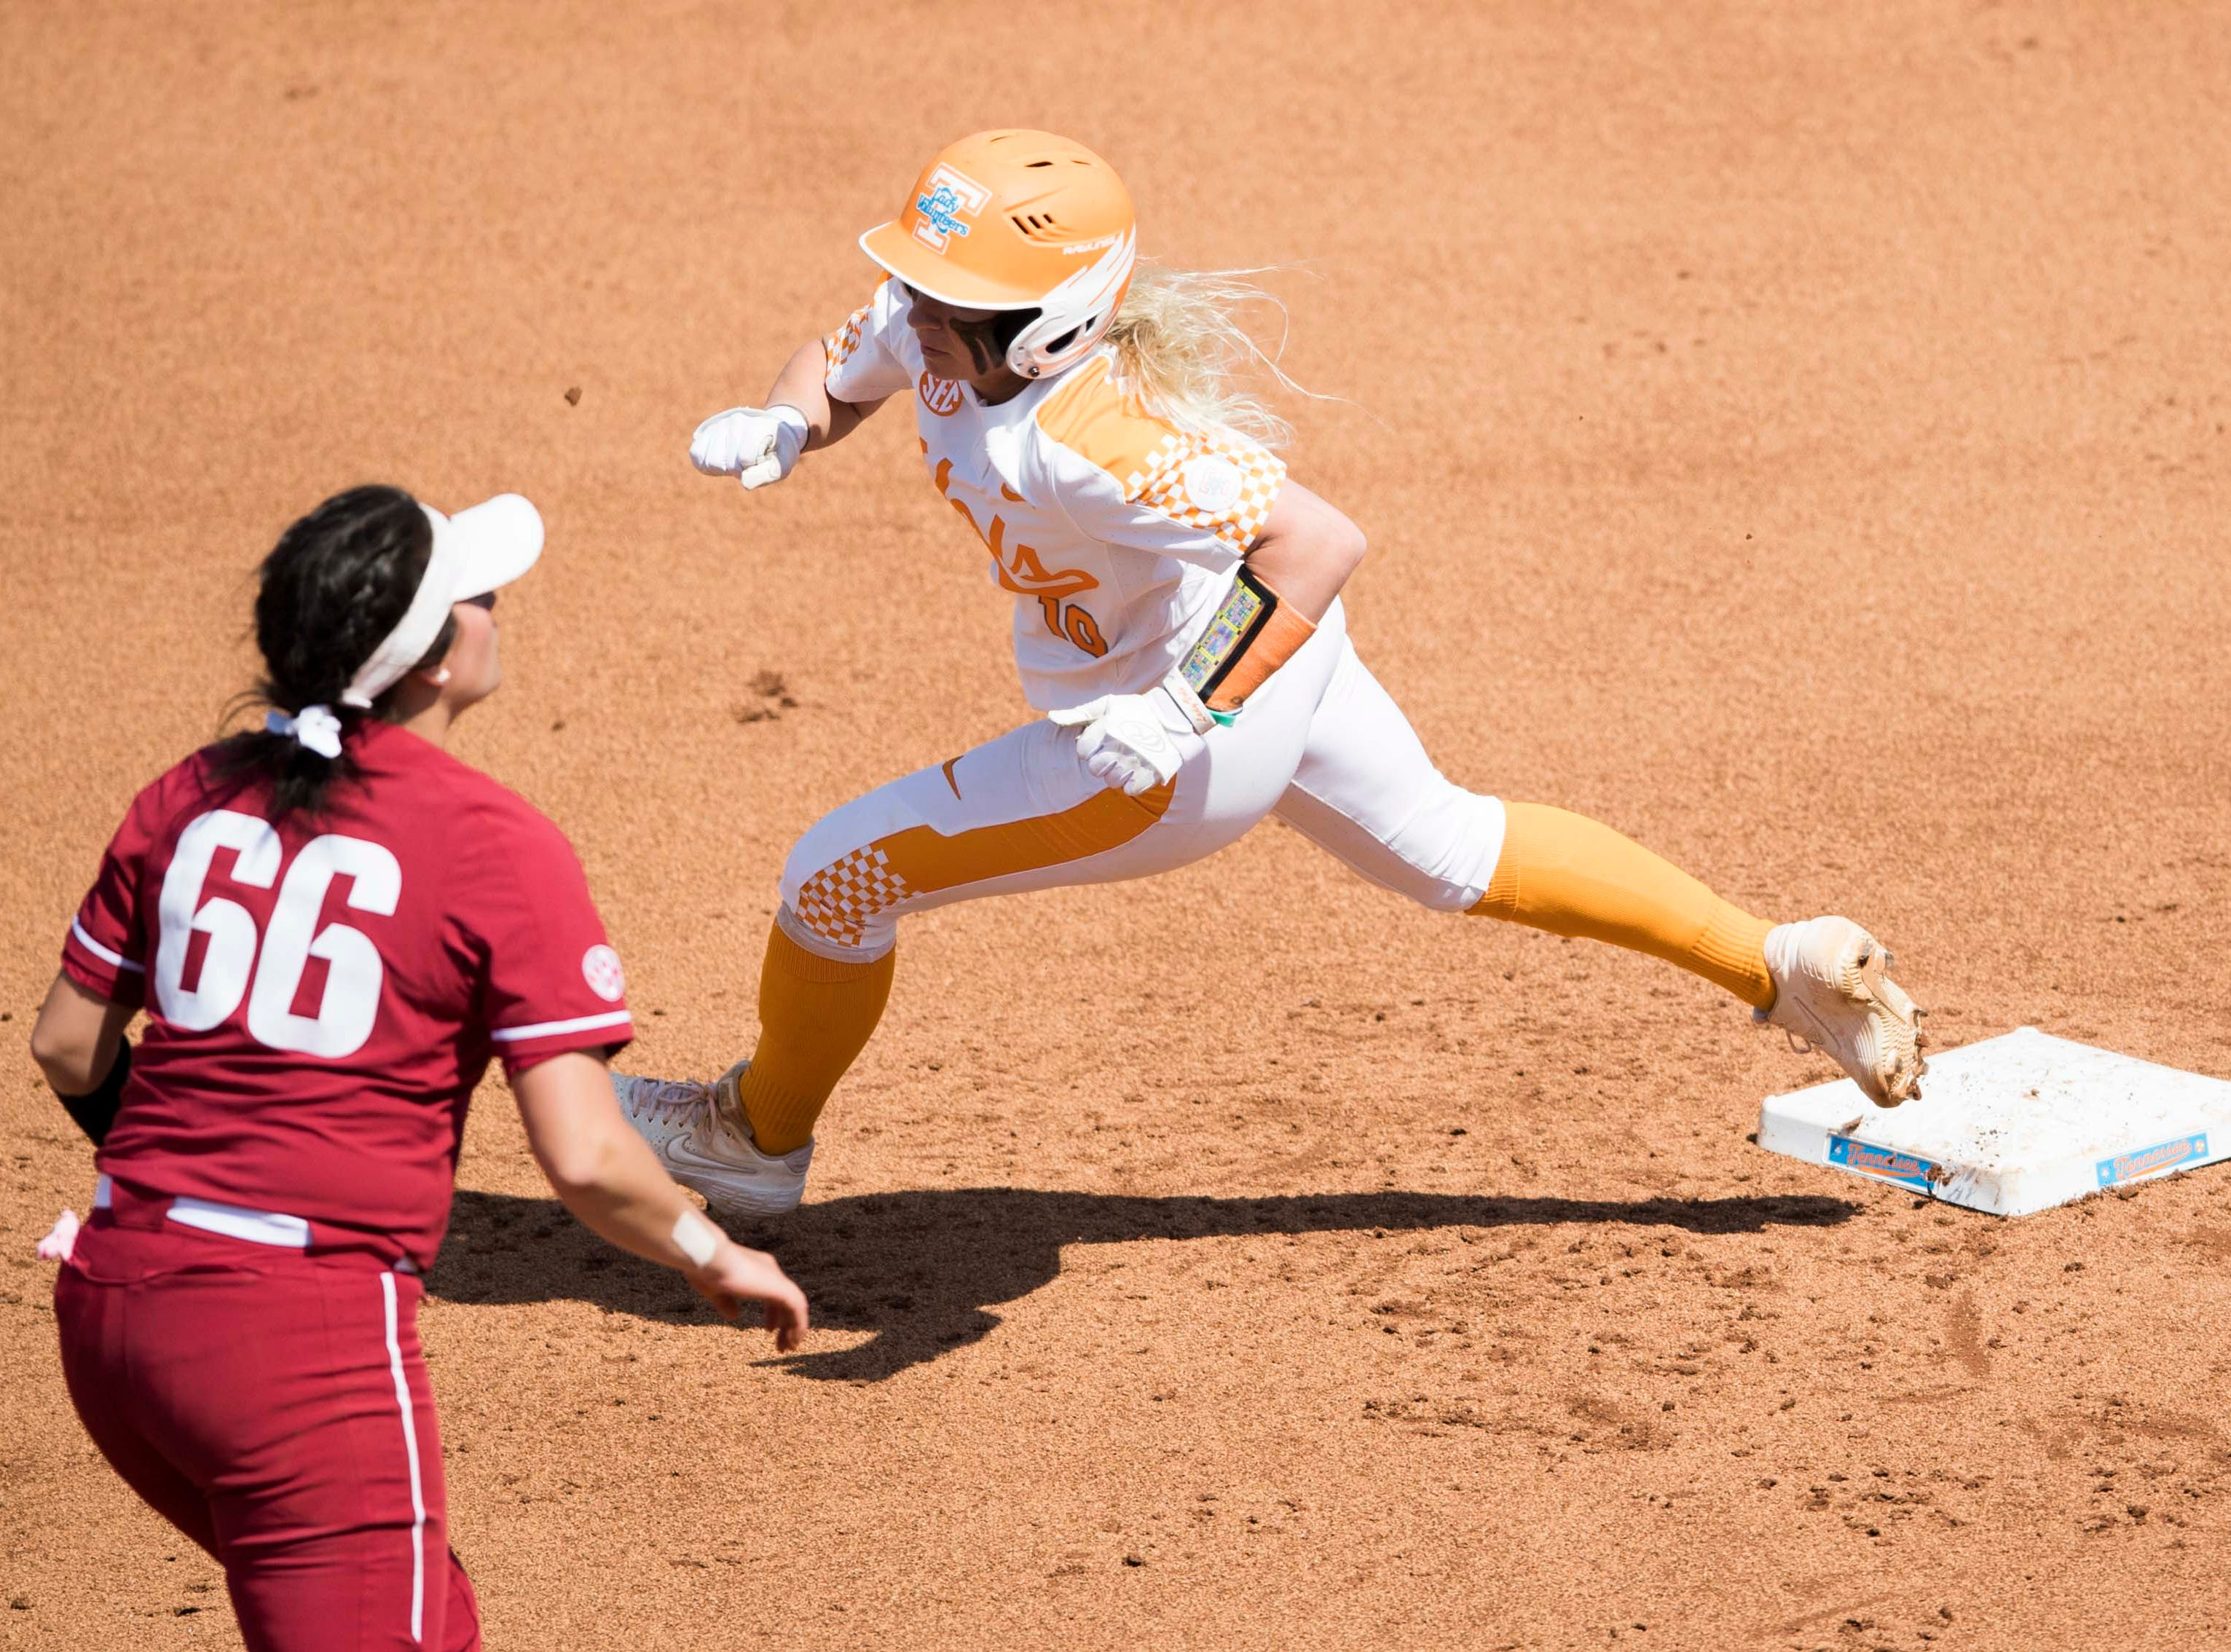 Tennessee infielder Aubrey Leach (10) rounds second during a Lady Vols softball game against Arkansas at Sherri Parker Lee stadium on University of Tennessee's campus in Knoxville Sunday, March 24, 2019. The Lady Vols defeated Arkansas.